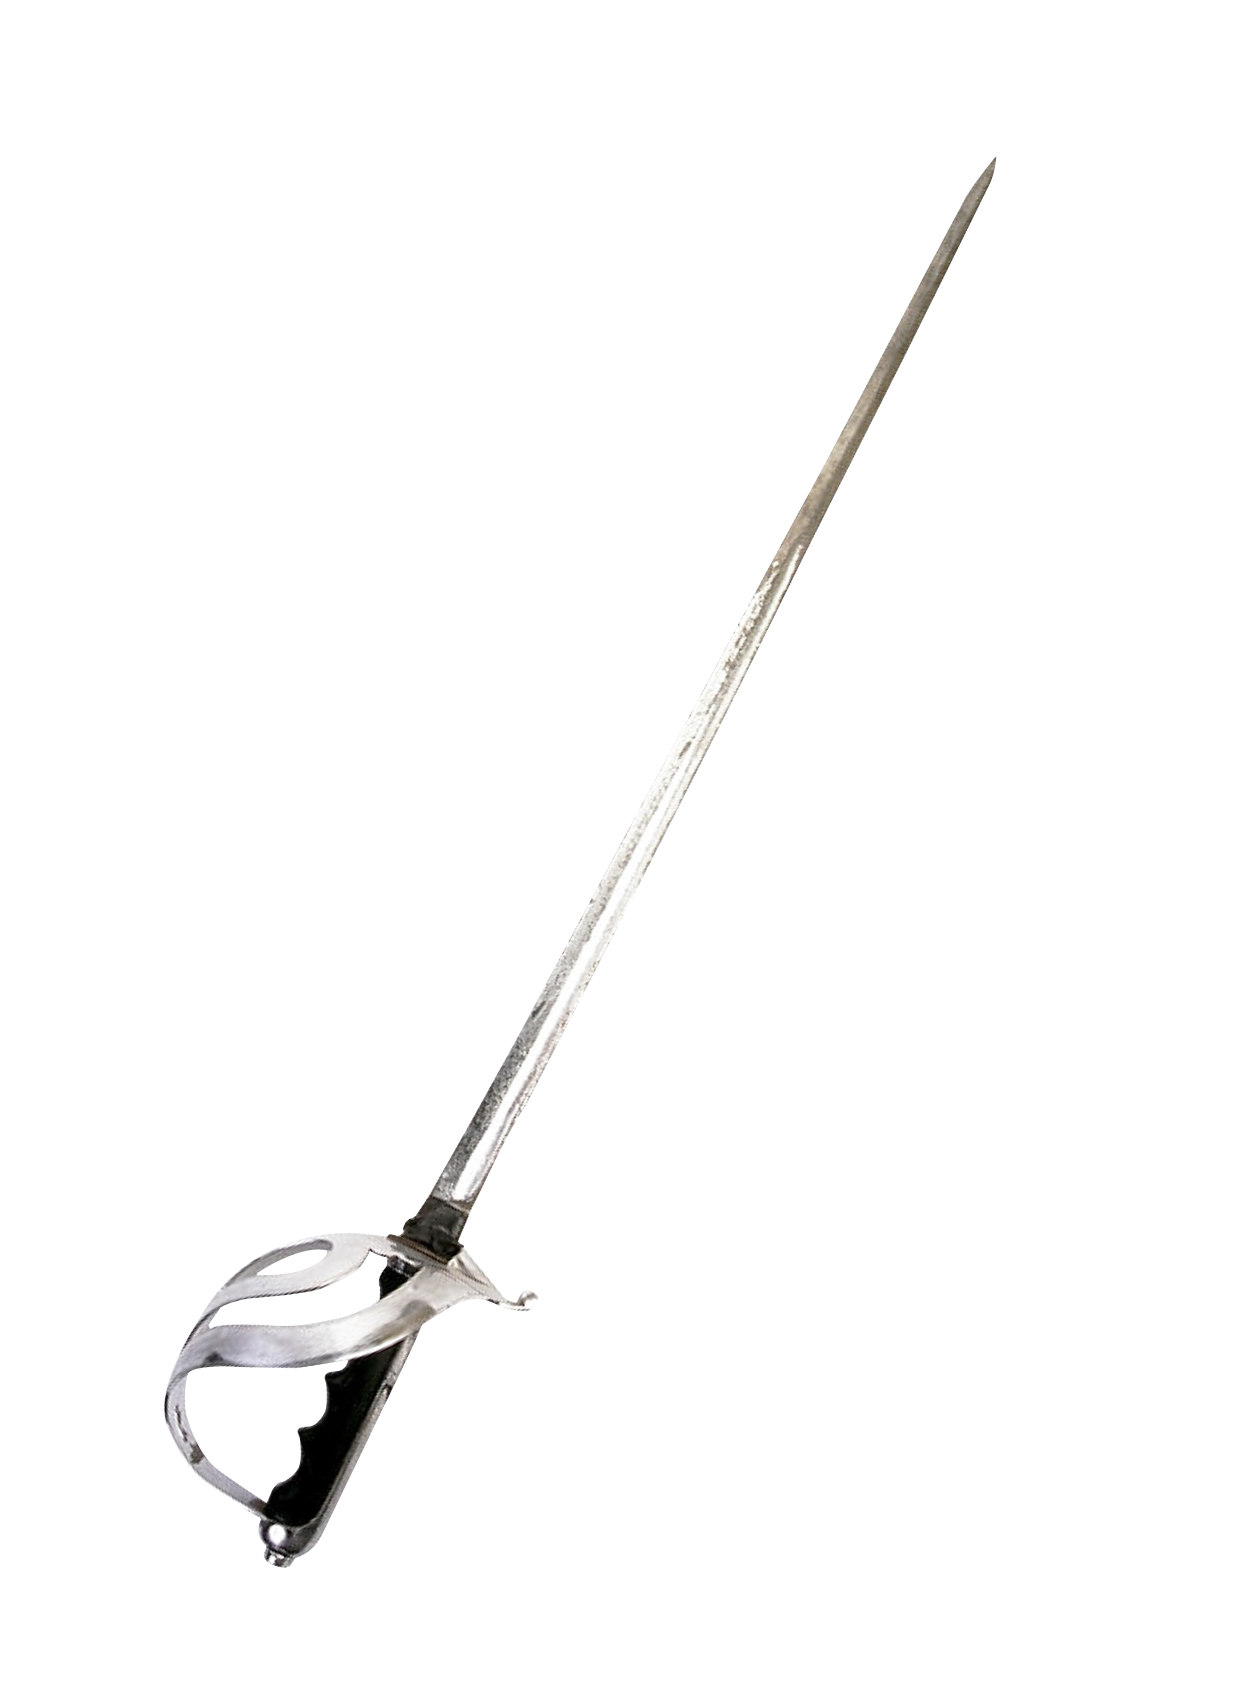 Sword PNG Transparent Image - Sword PNG